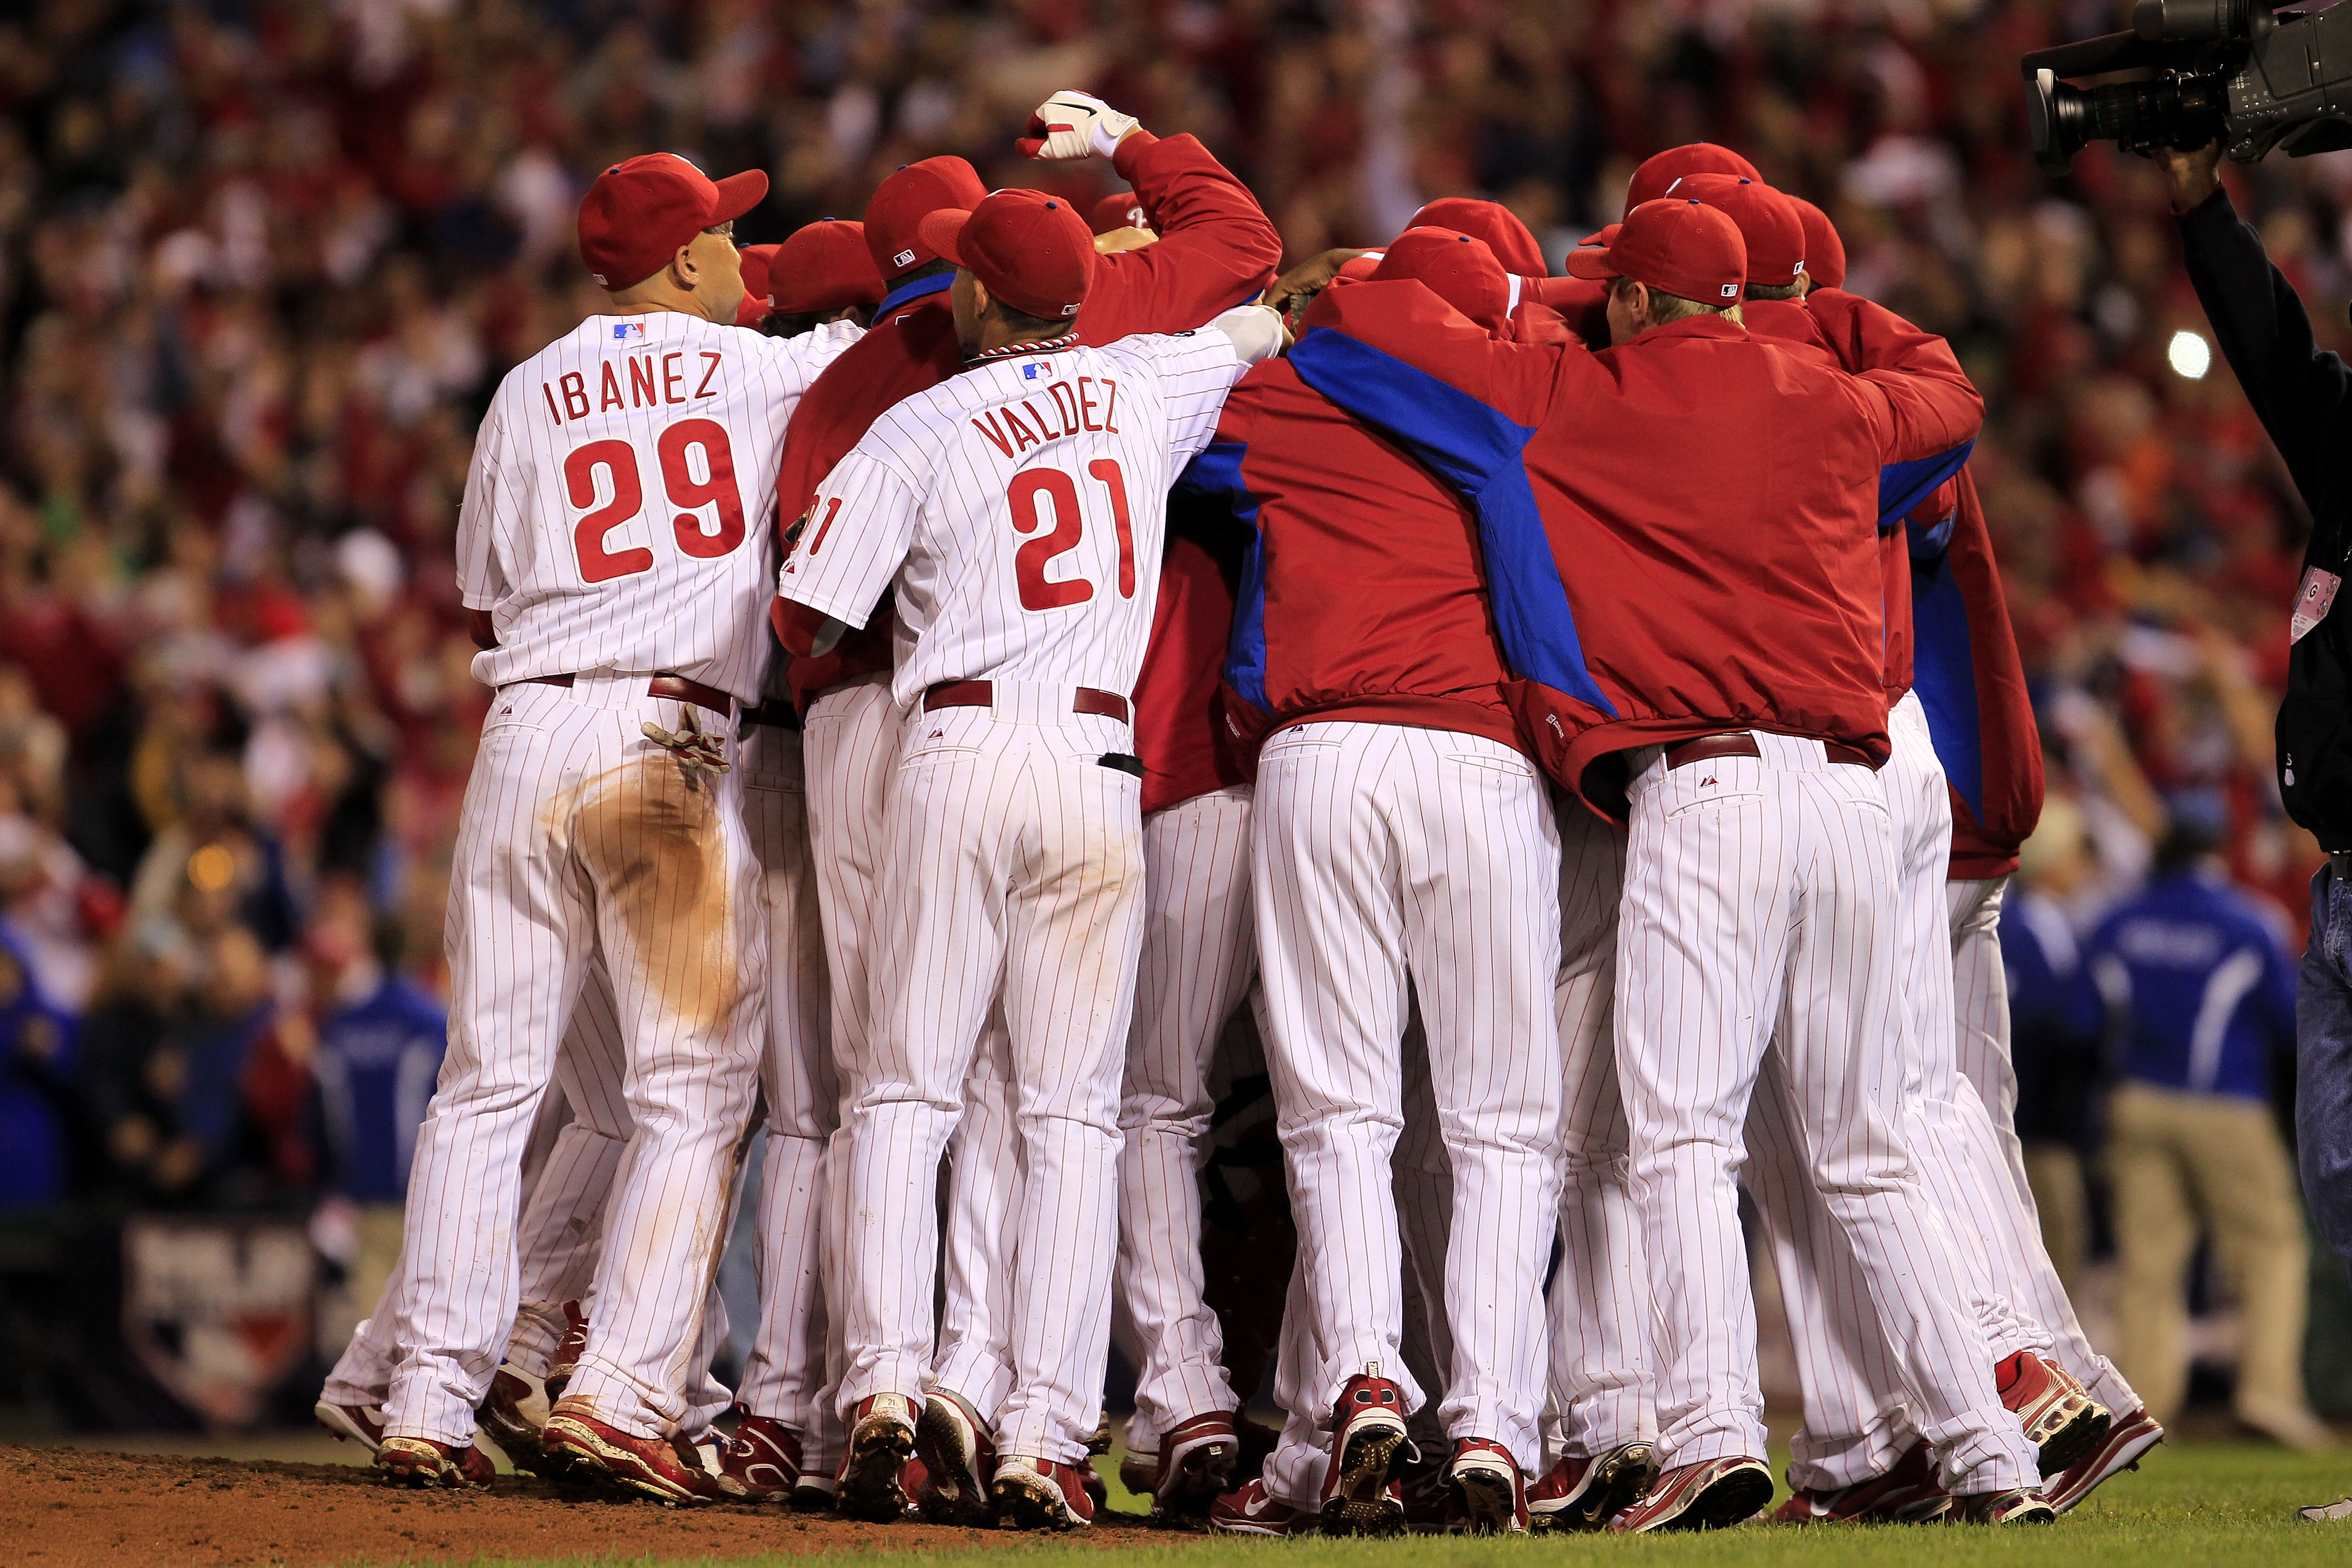 PHILADELPHIA - OCTOBER 06: Roy Halladay #34 of the Philadelphia Phillies is mobbed by teammates after pitching a no-hitter and the win in Game 1 of the NLDS against the Cincinnati Reds at Citizens Bank Park on October 6, 2010 in Philadelphia, Pennsylvania